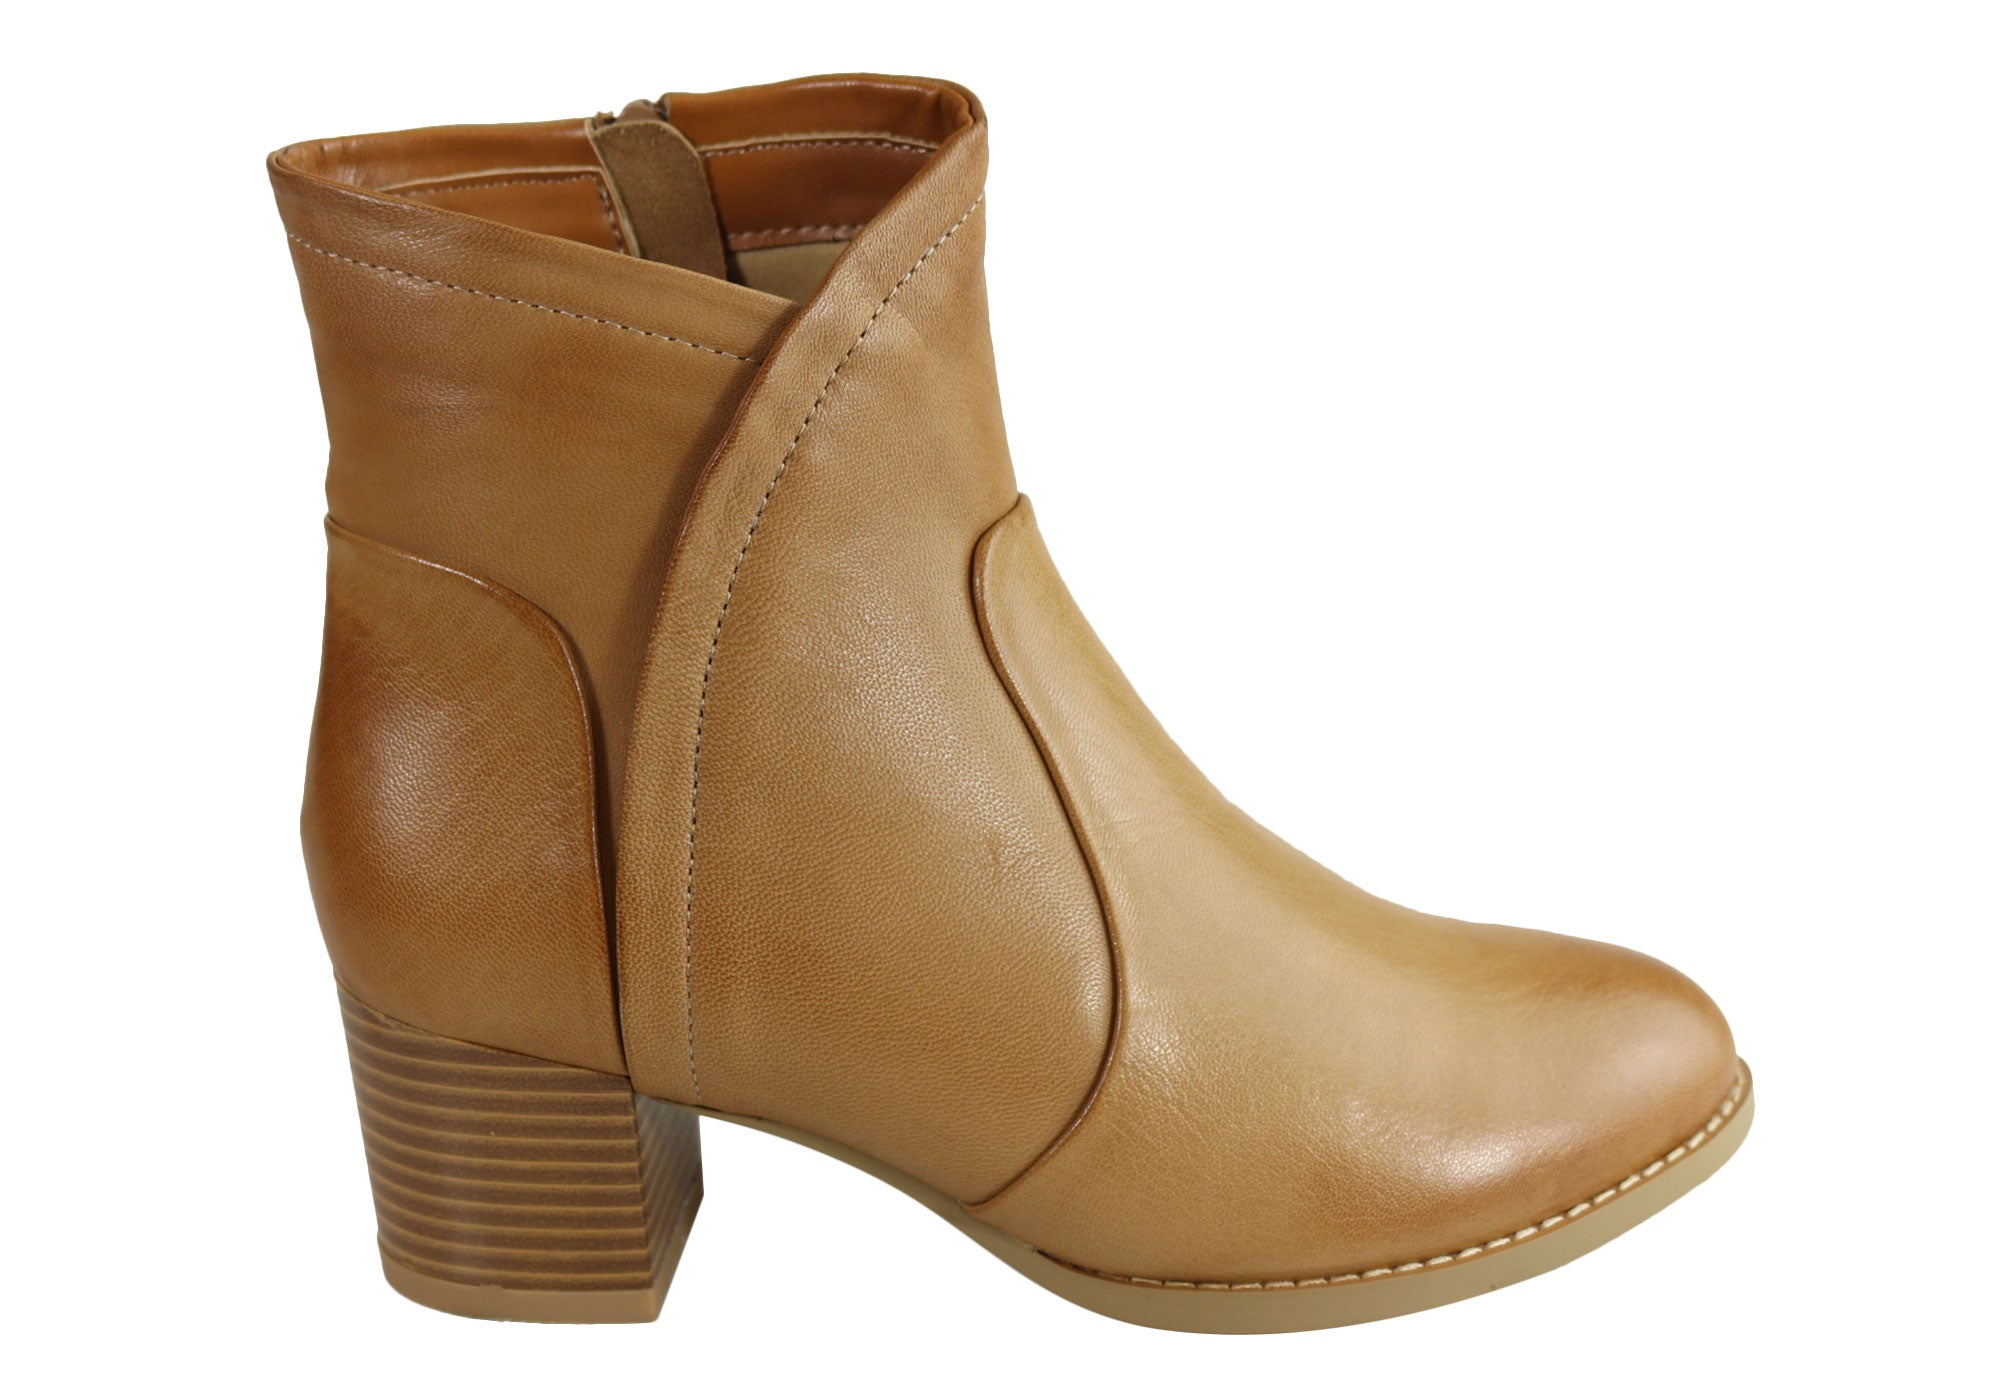 ee503dcbe895 Home Natural Comfort Malia Womens Leather Comfortable Mid Heel Ankle Boots.  Tan ...